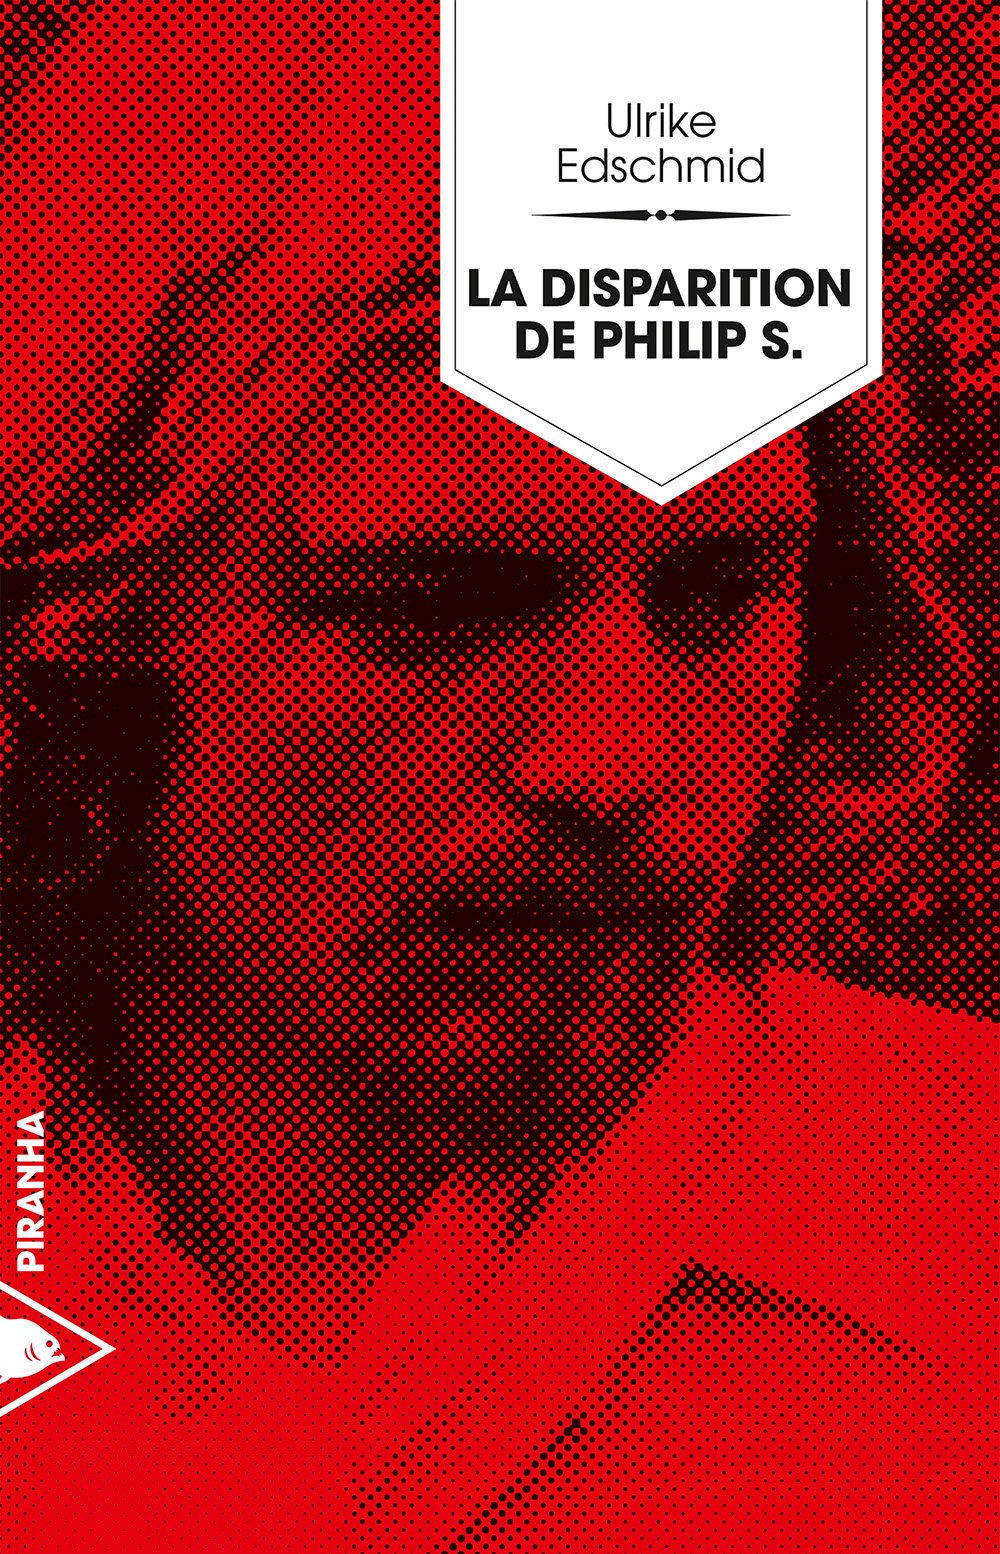 La disparition de Philip S.